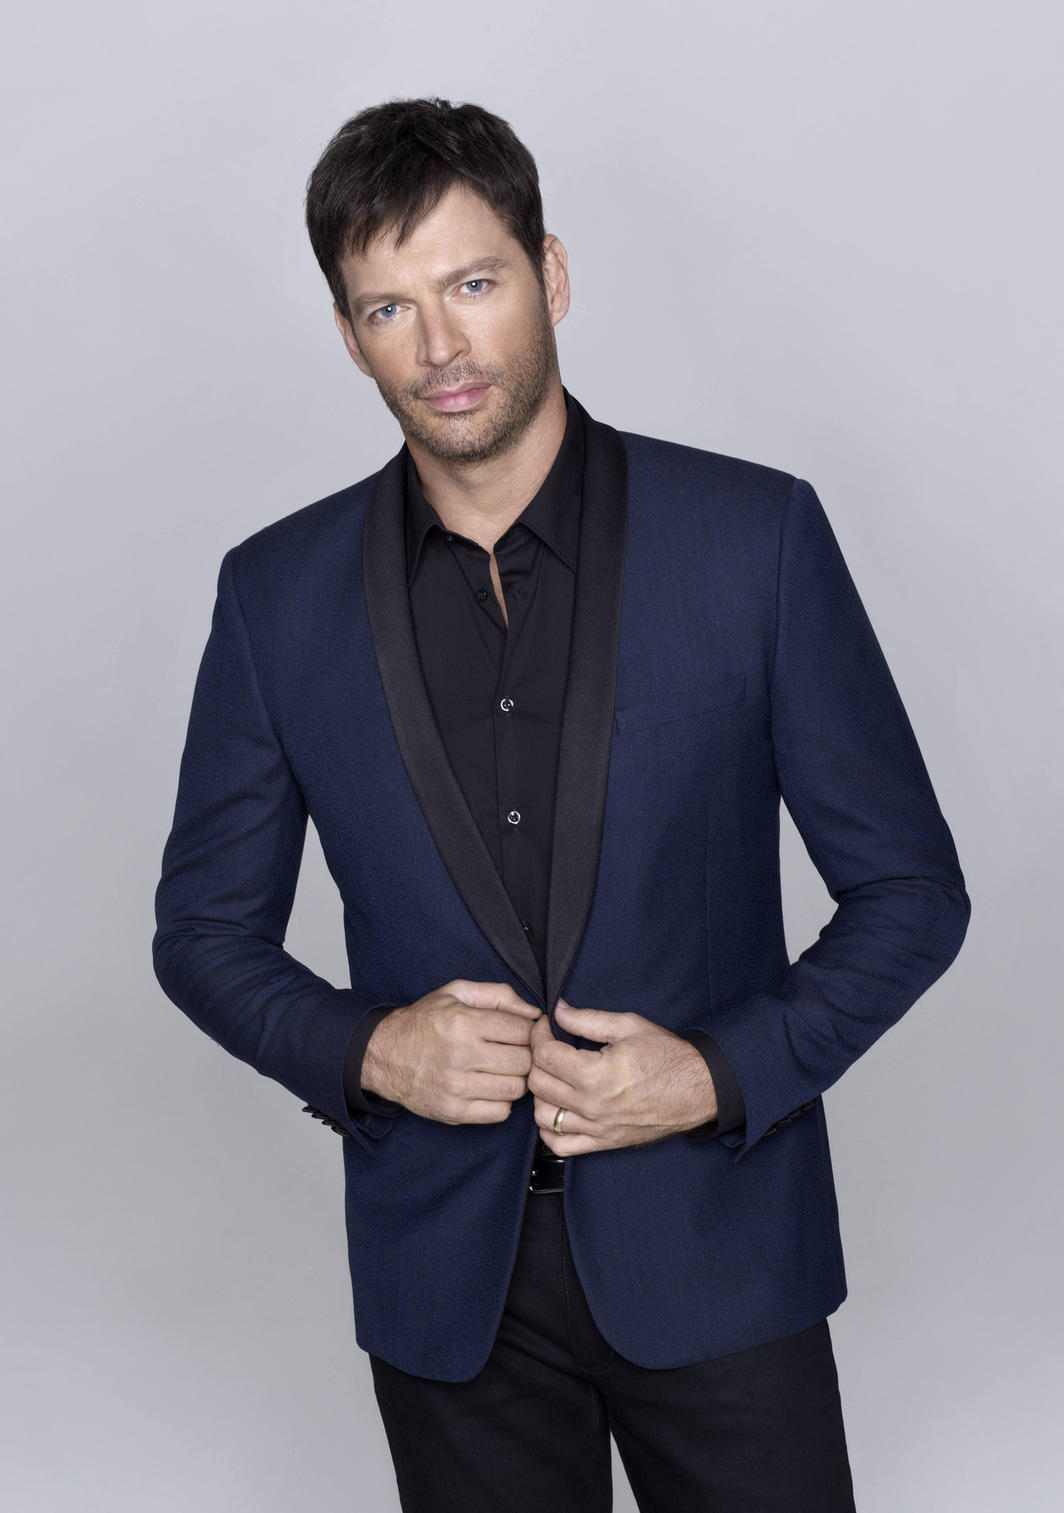 Harry Connick Jr , Robert Irvine, T D  Jakes Coming To